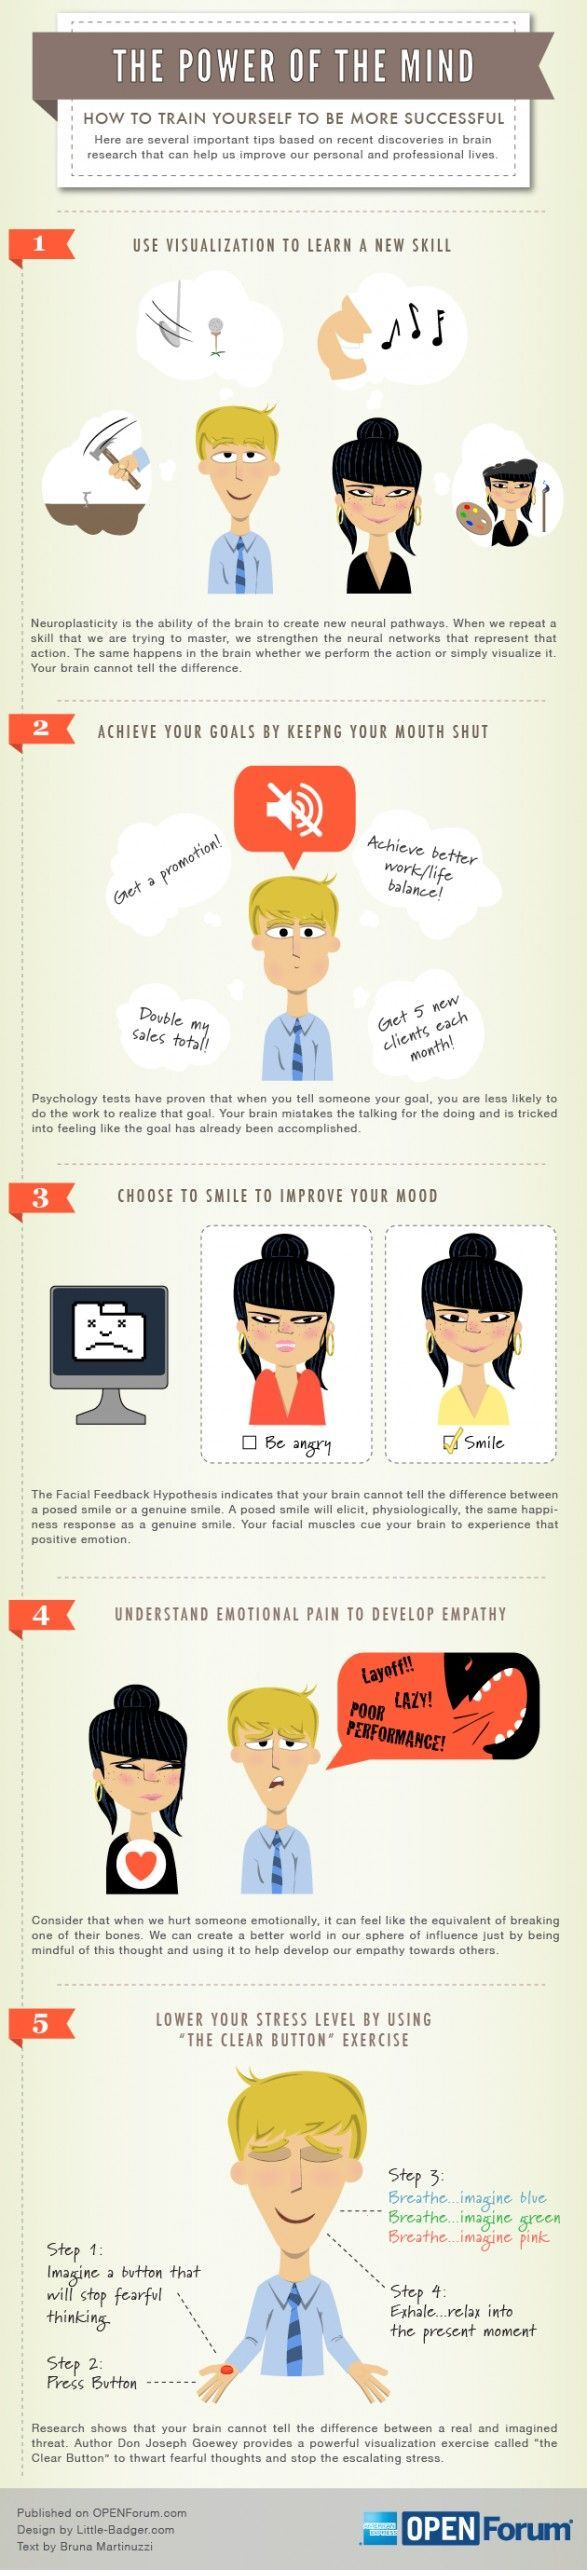 Psychology-Infographic-How-to-Train-Your-Brain-to-Be Psychology Infographic : Psychology : power of the mind. 5 ways brain research can help your business - How to Train Your Brain to Be More Successful